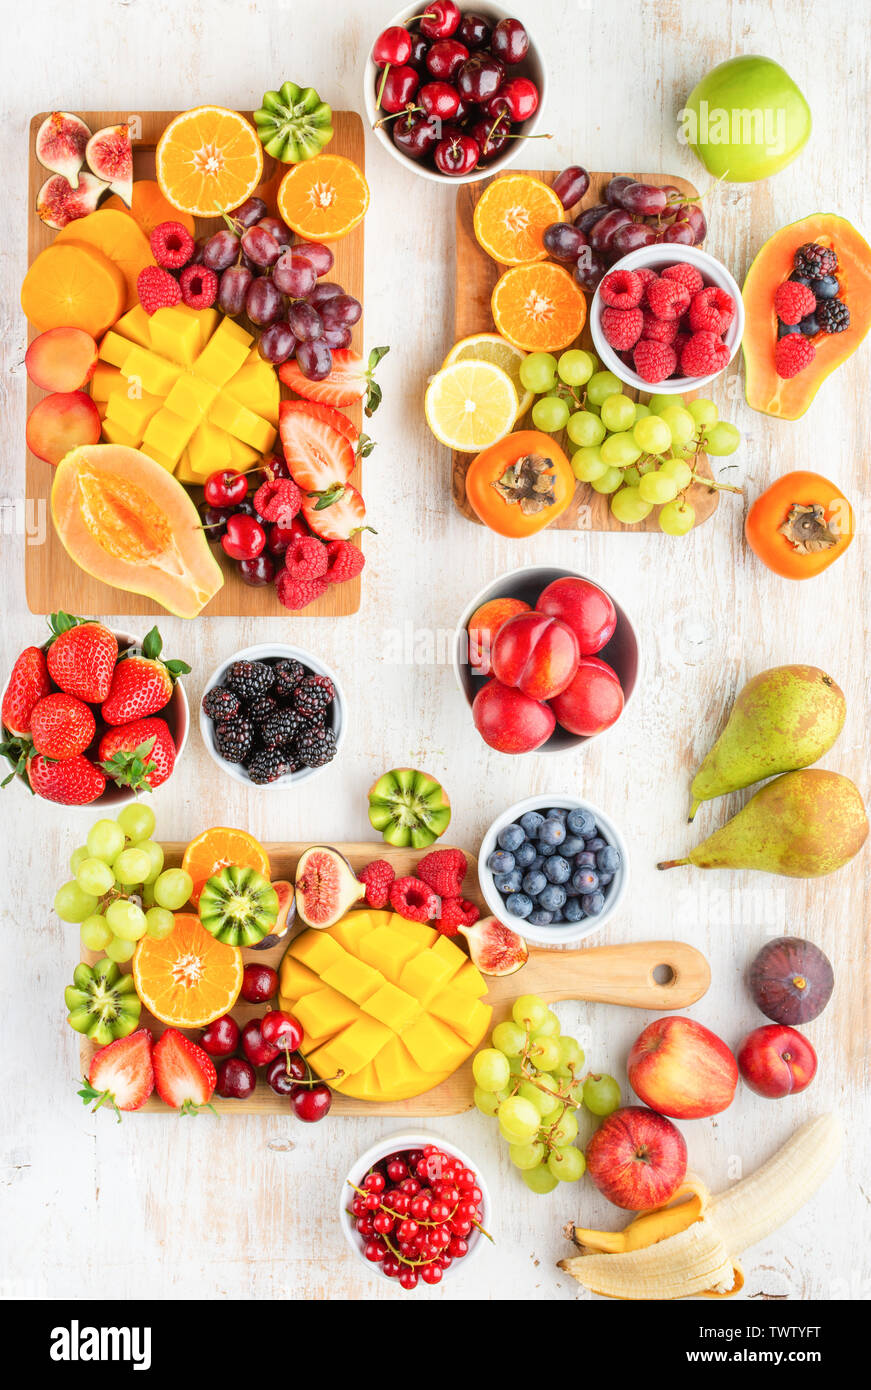 Vegan breakfast, cut colorful rainbow fruits, strawberries raspberries oranges plums apples kiwis grapes blueberries mango persimmon, copy space, sele - Stock Image